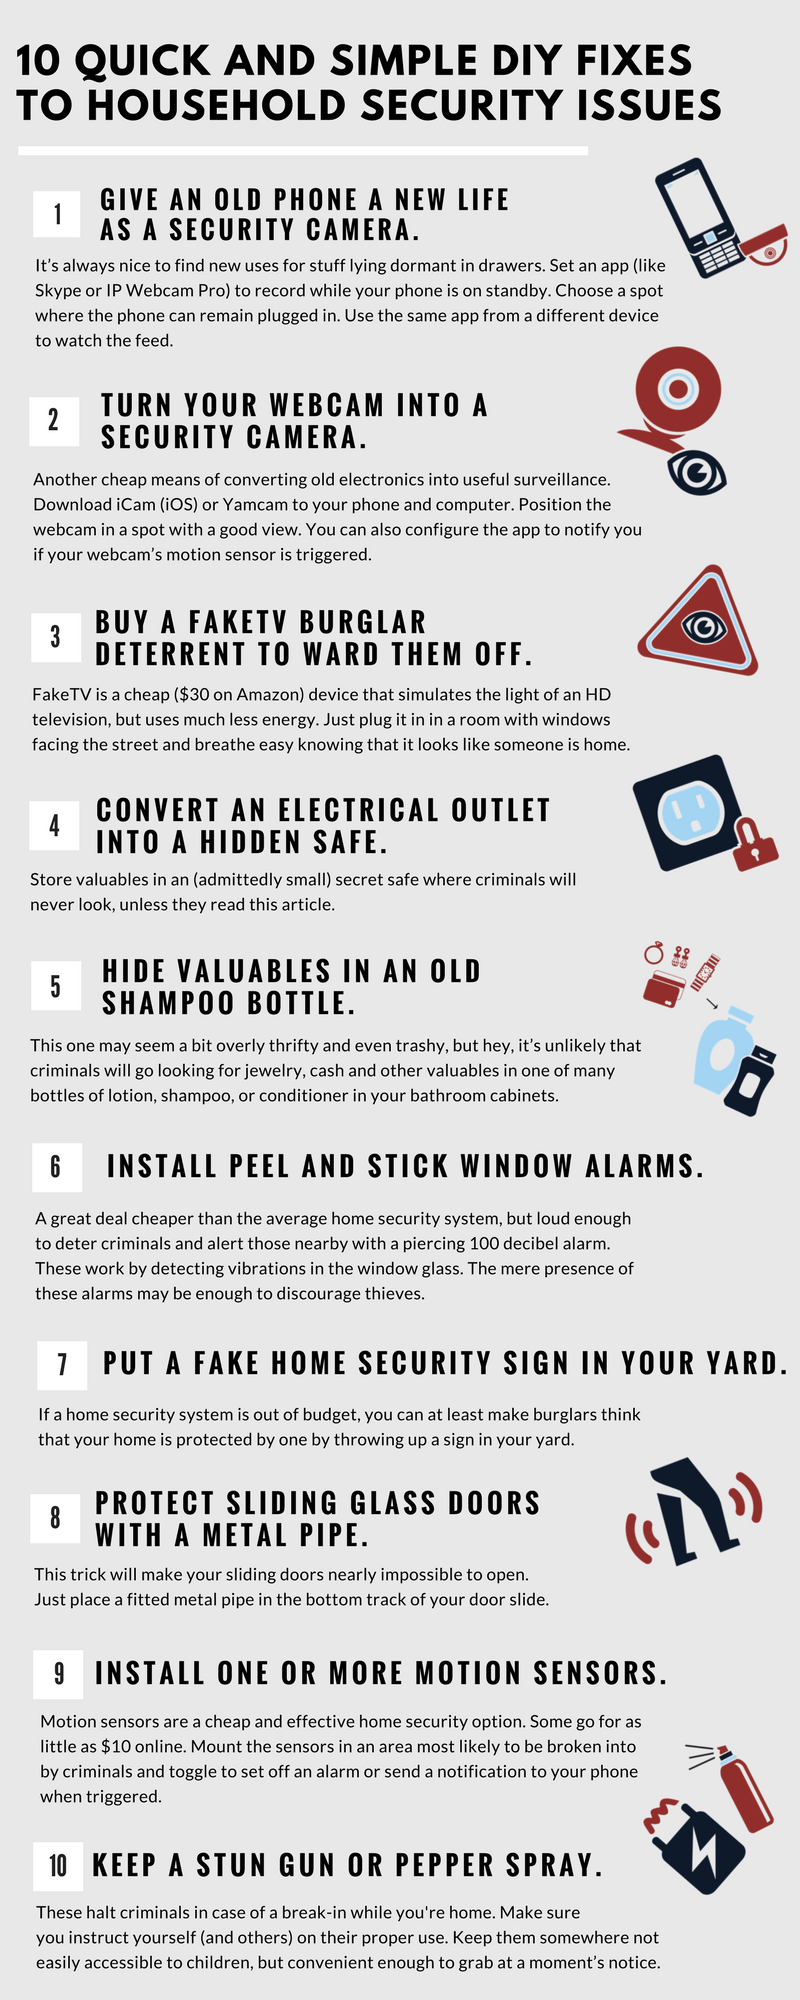 10 Quick and Simple DIY Fixes to Common Household Security Issues (2)